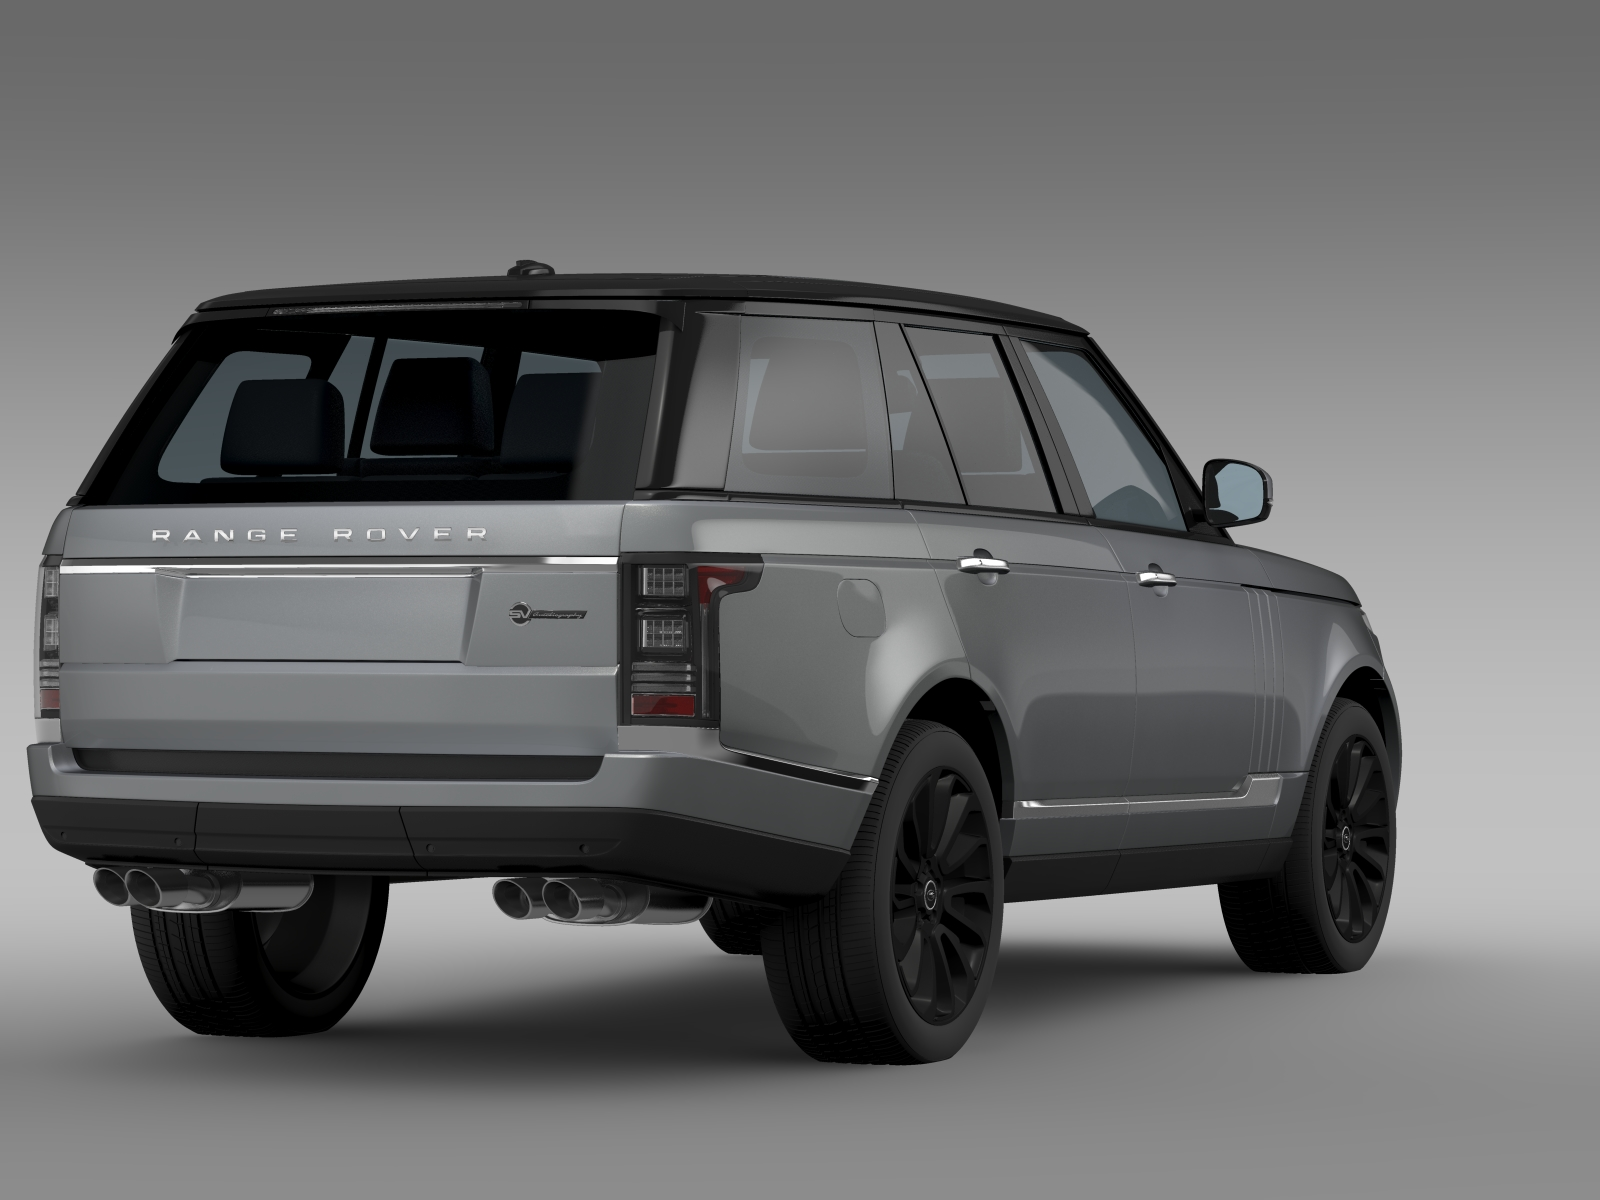 range rover svautobiography l405 2016 v1 3d model flatpyramid. Black Bedroom Furniture Sets. Home Design Ideas